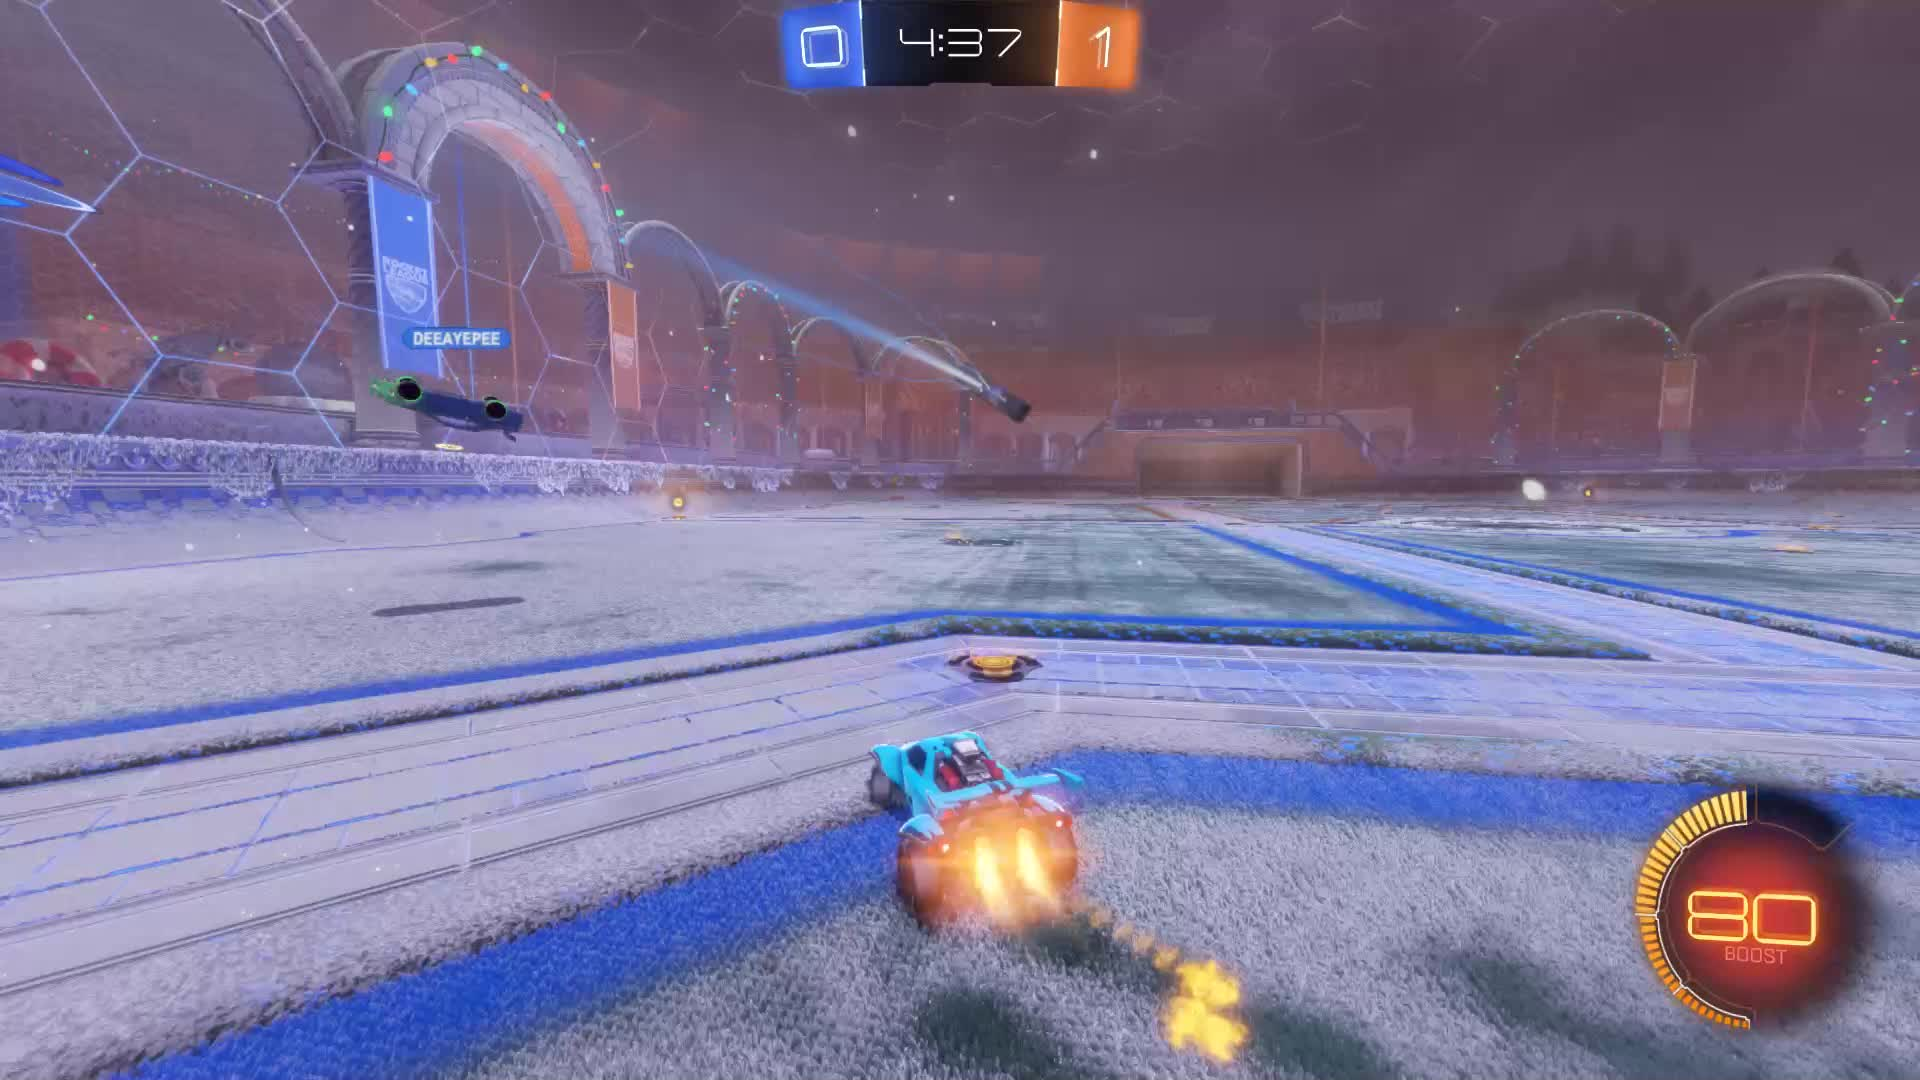 Gif Your Game, GifYourGame, Goal, Rocket League, RocketLeague, Sync Oh.5, Goal 2: Sync Oh.5 GIFs